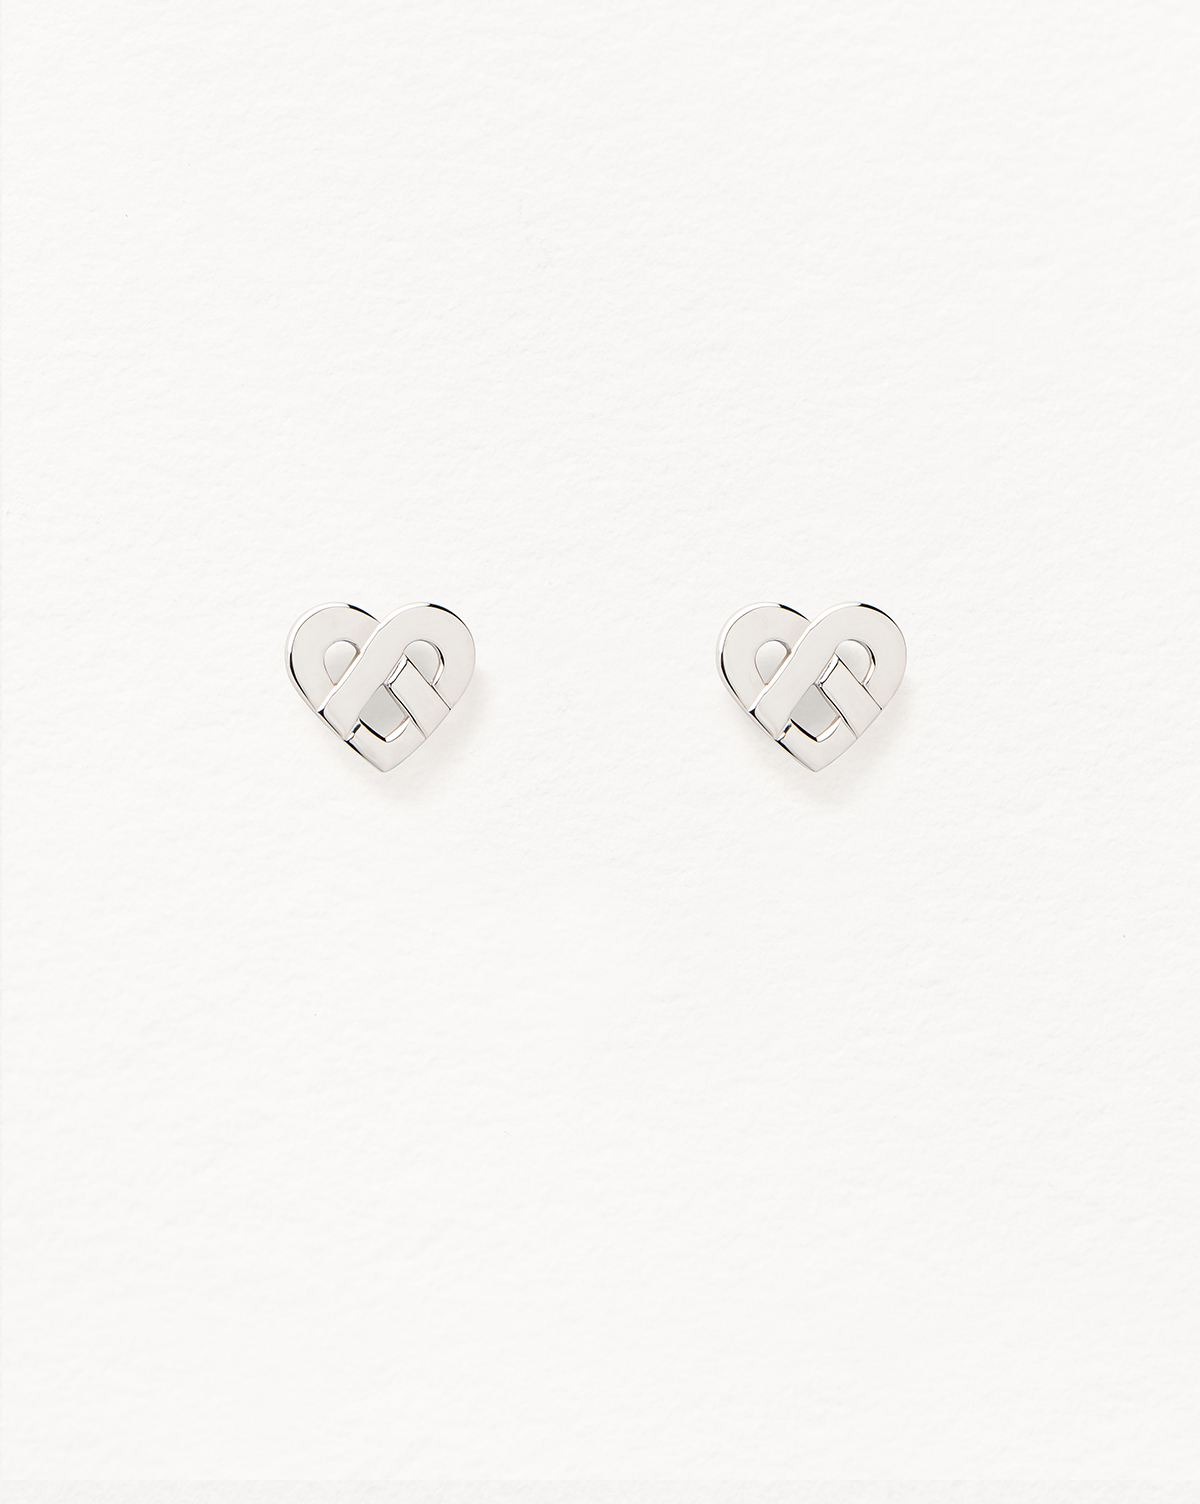 Cœur Entrelacé earrings